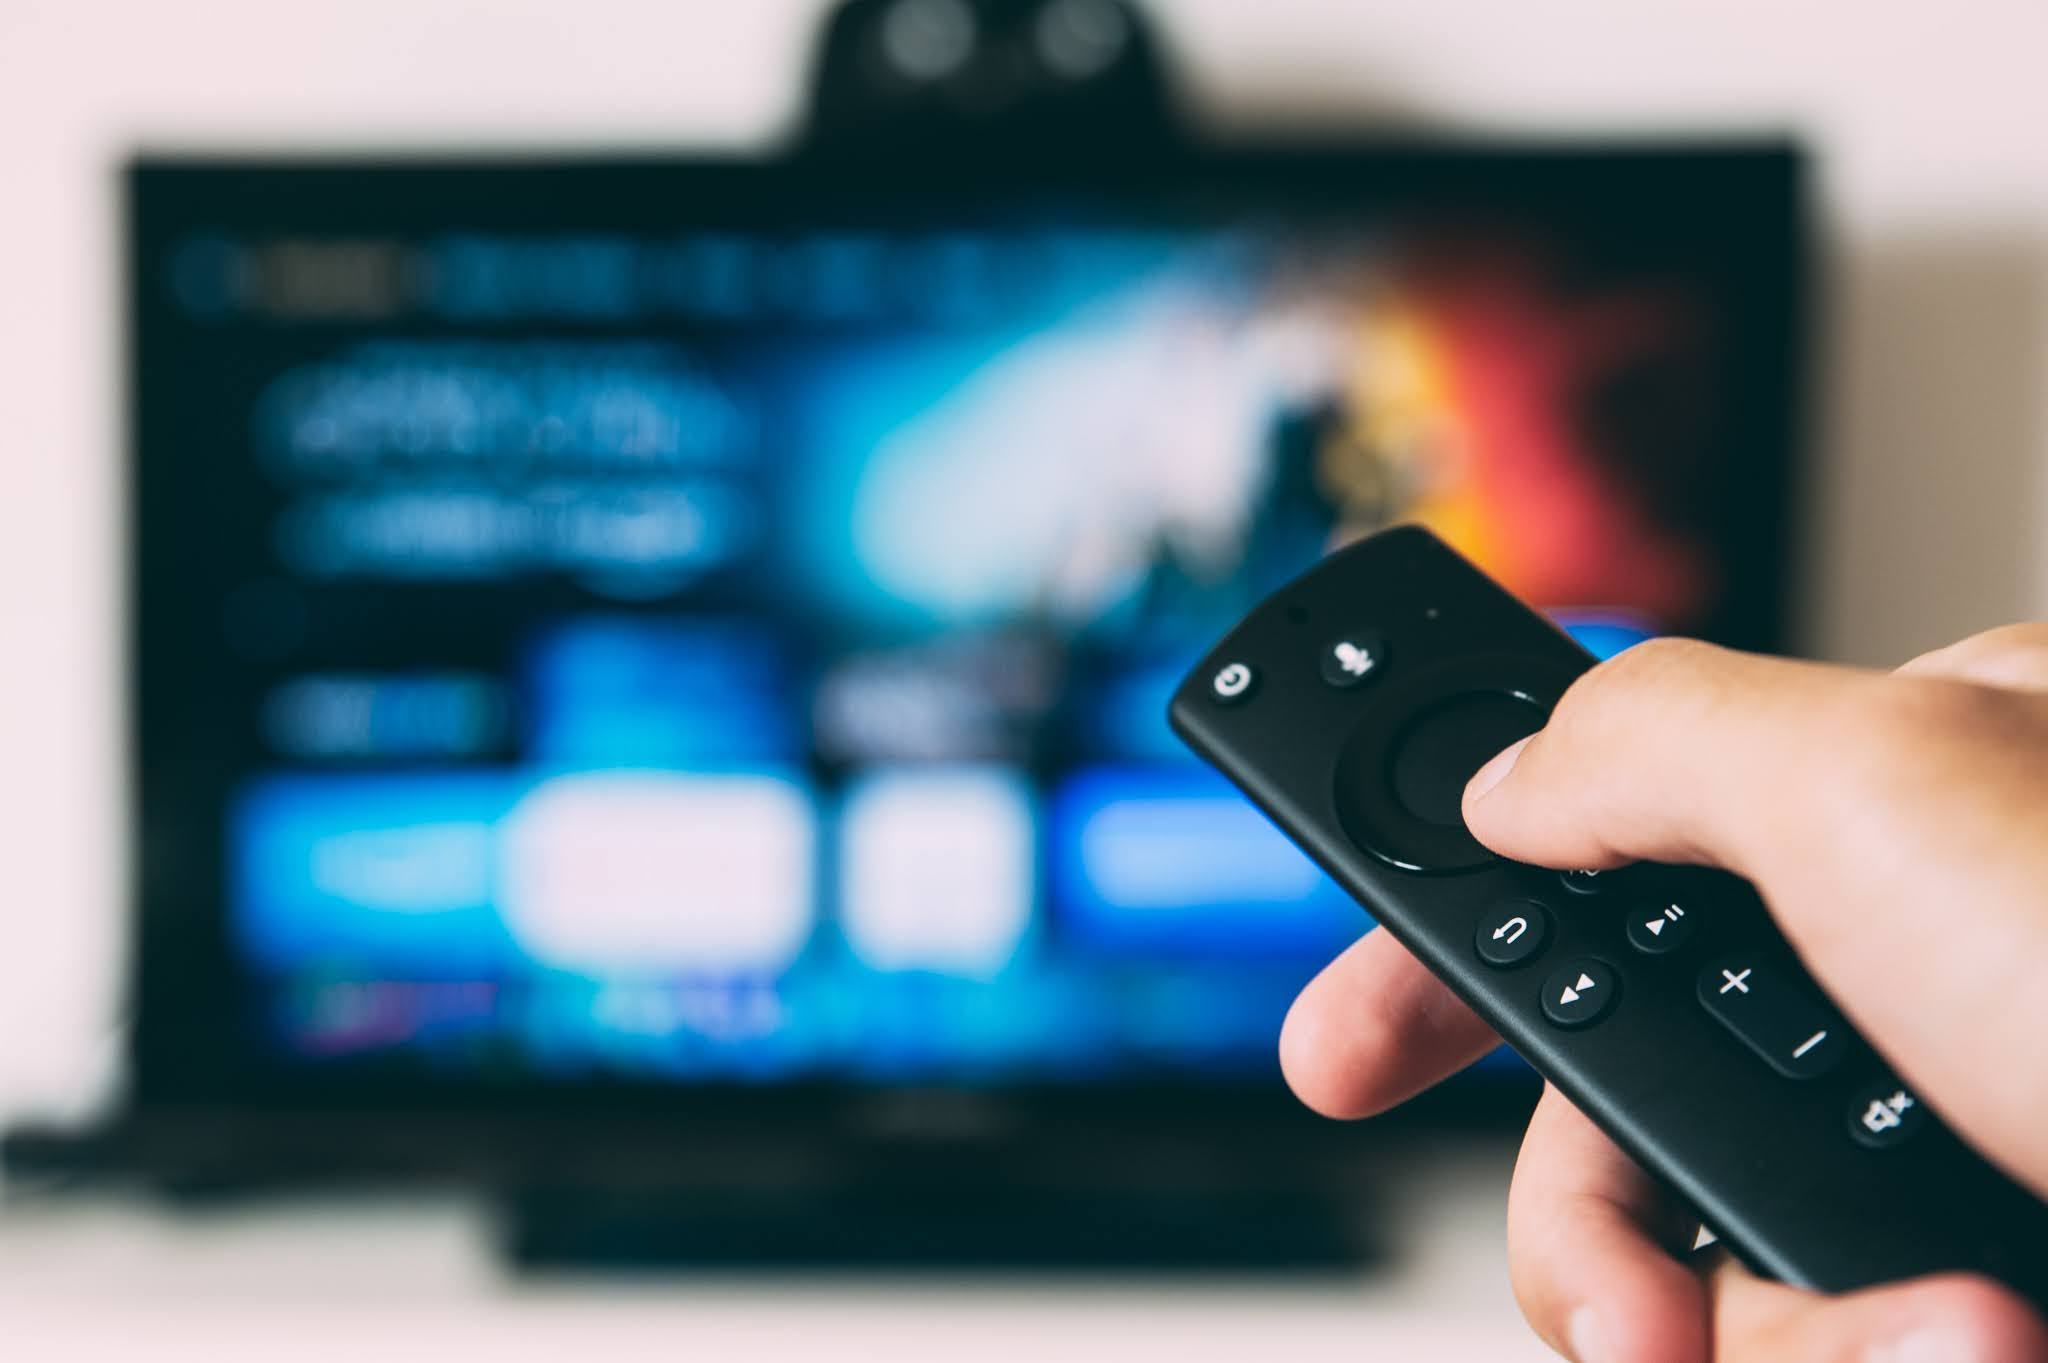 Stock image from Unsplash showing a remote and a blurred smart TV in the background